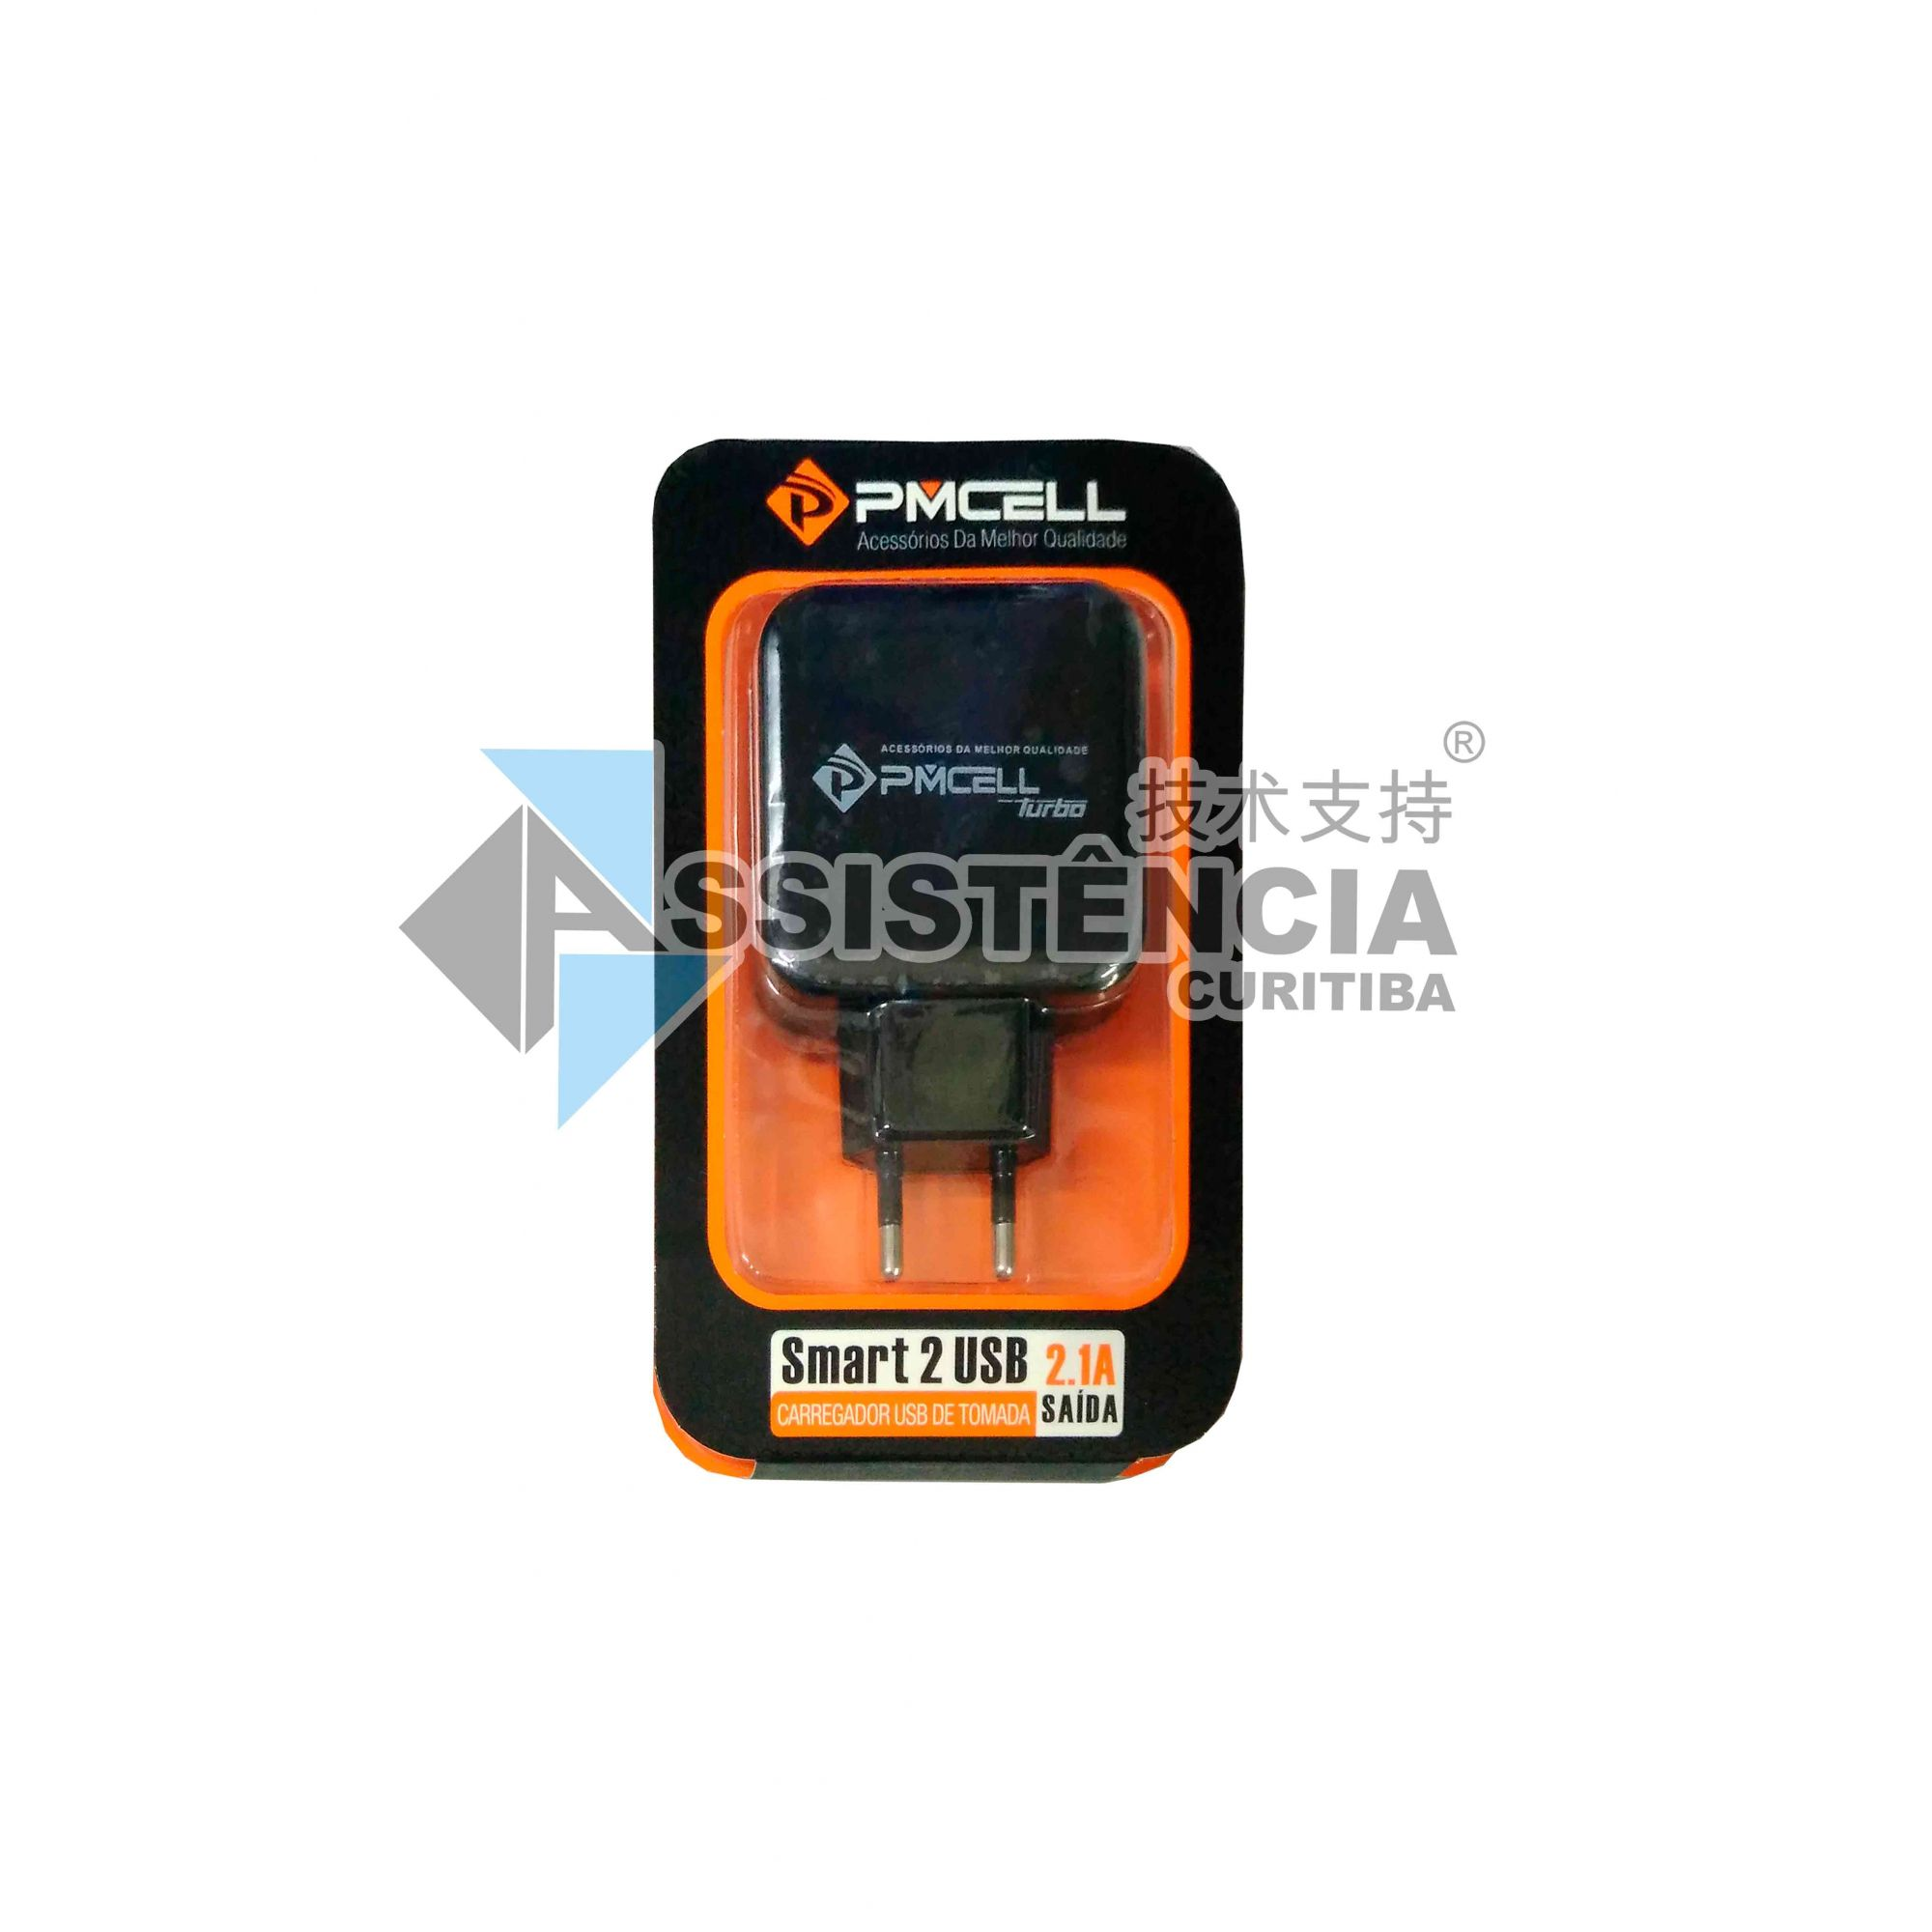 FONTE USB SMART POWER PMCELL HC-21 PRETO